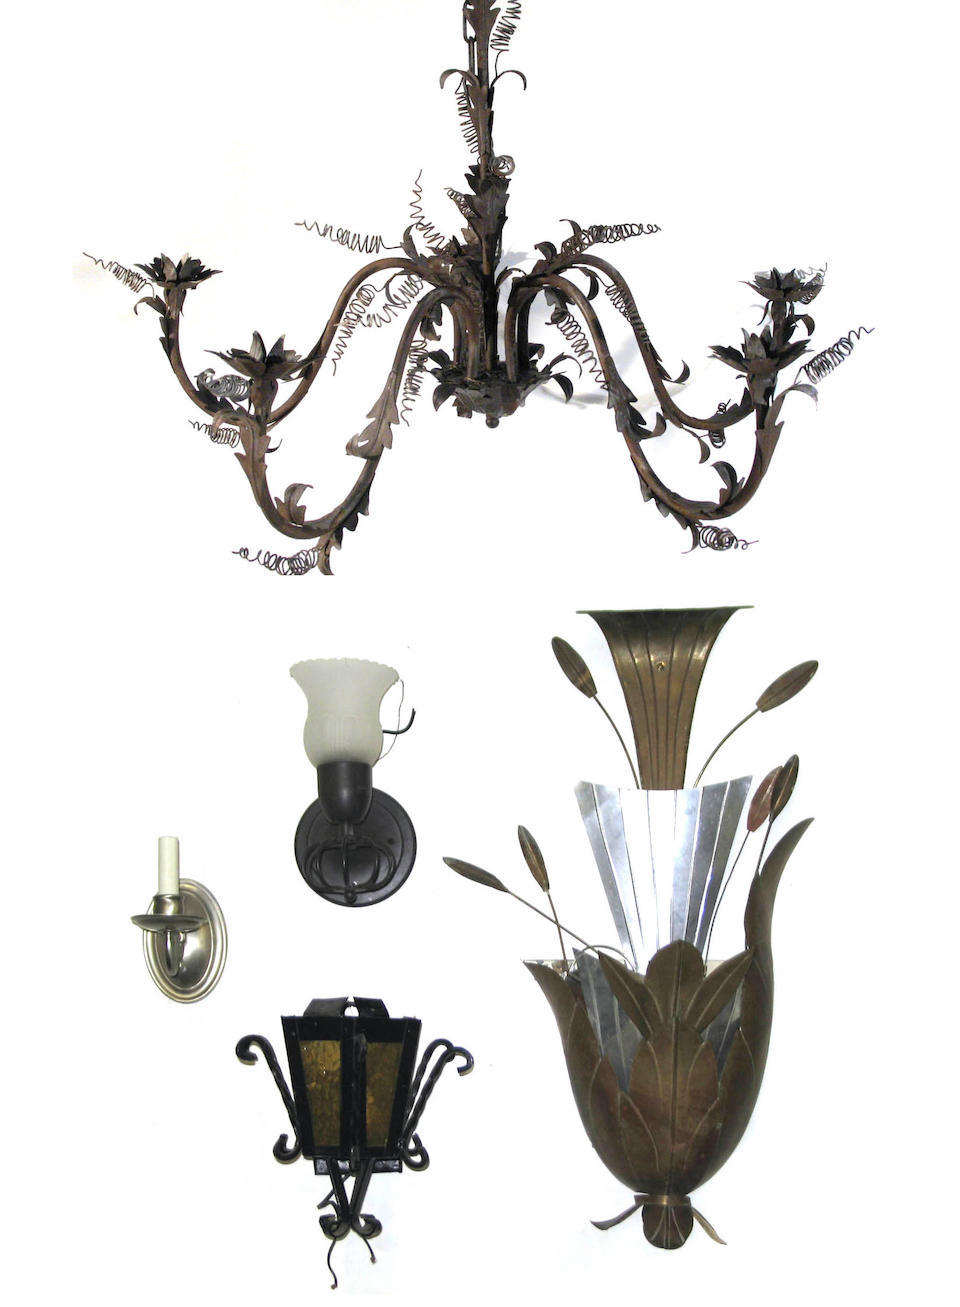 A group of sconces in various media